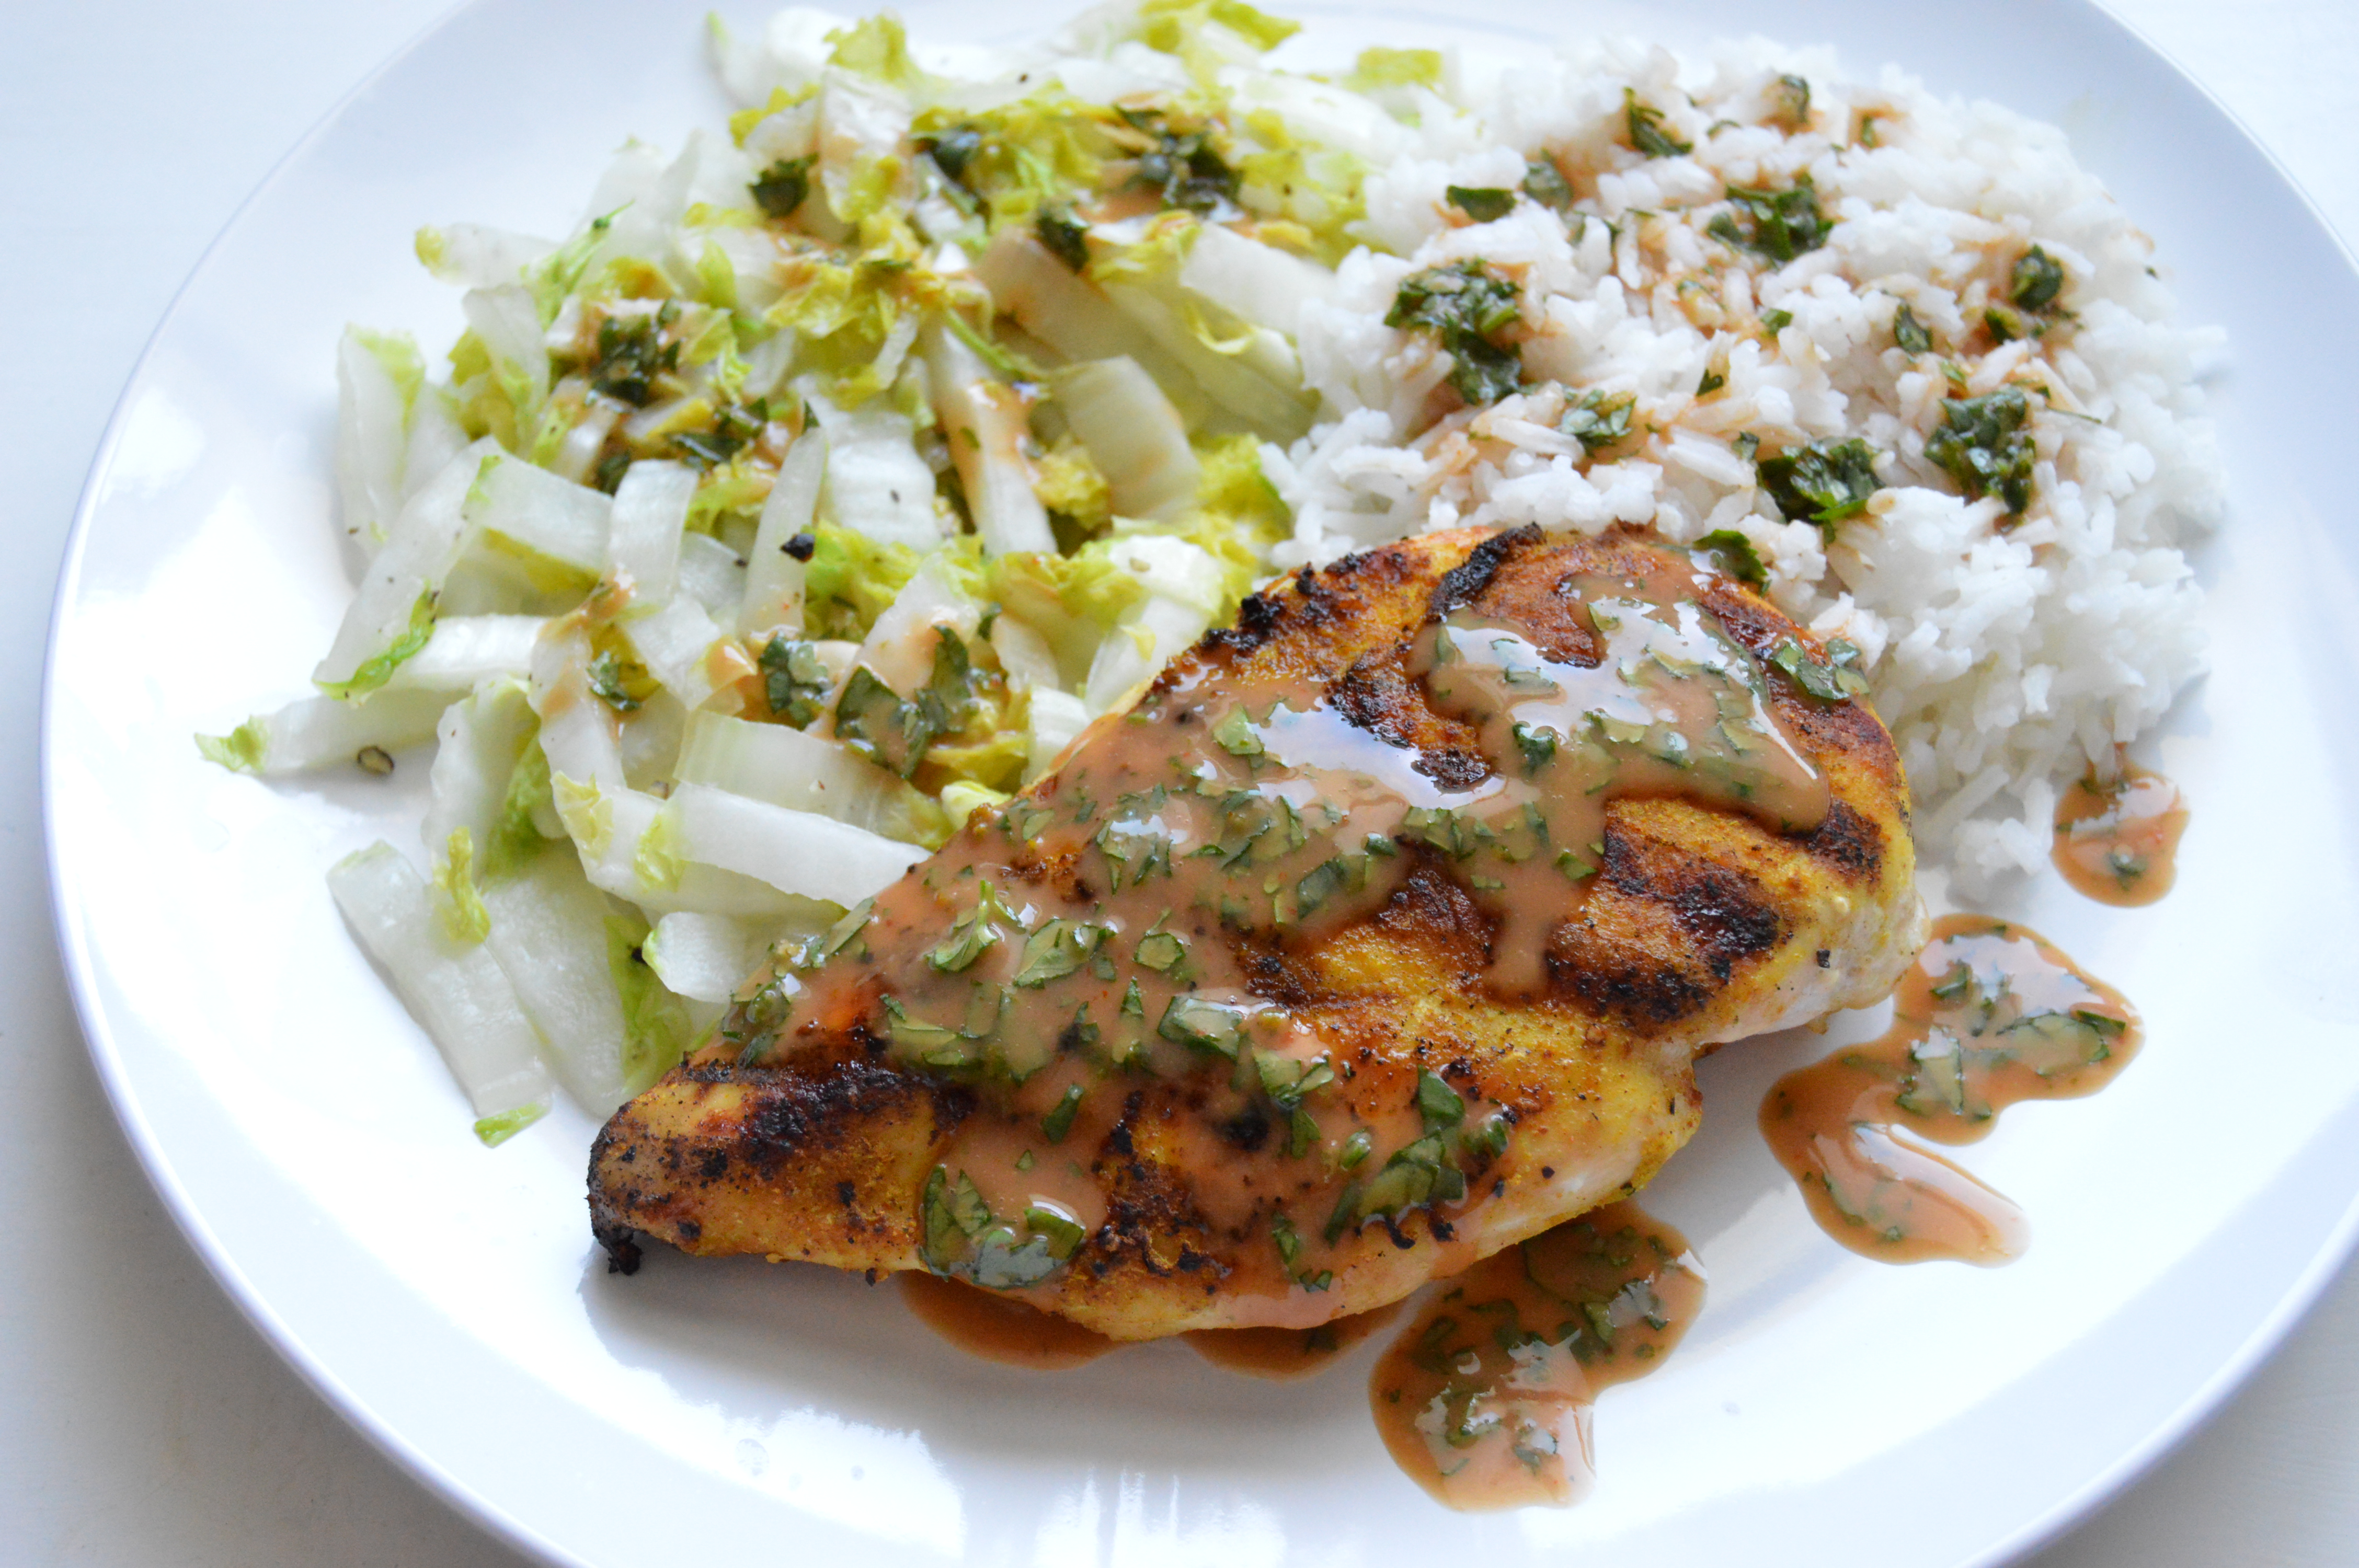 Grilled Curry Ginger Chicken with Creamy Sriracha Sauce